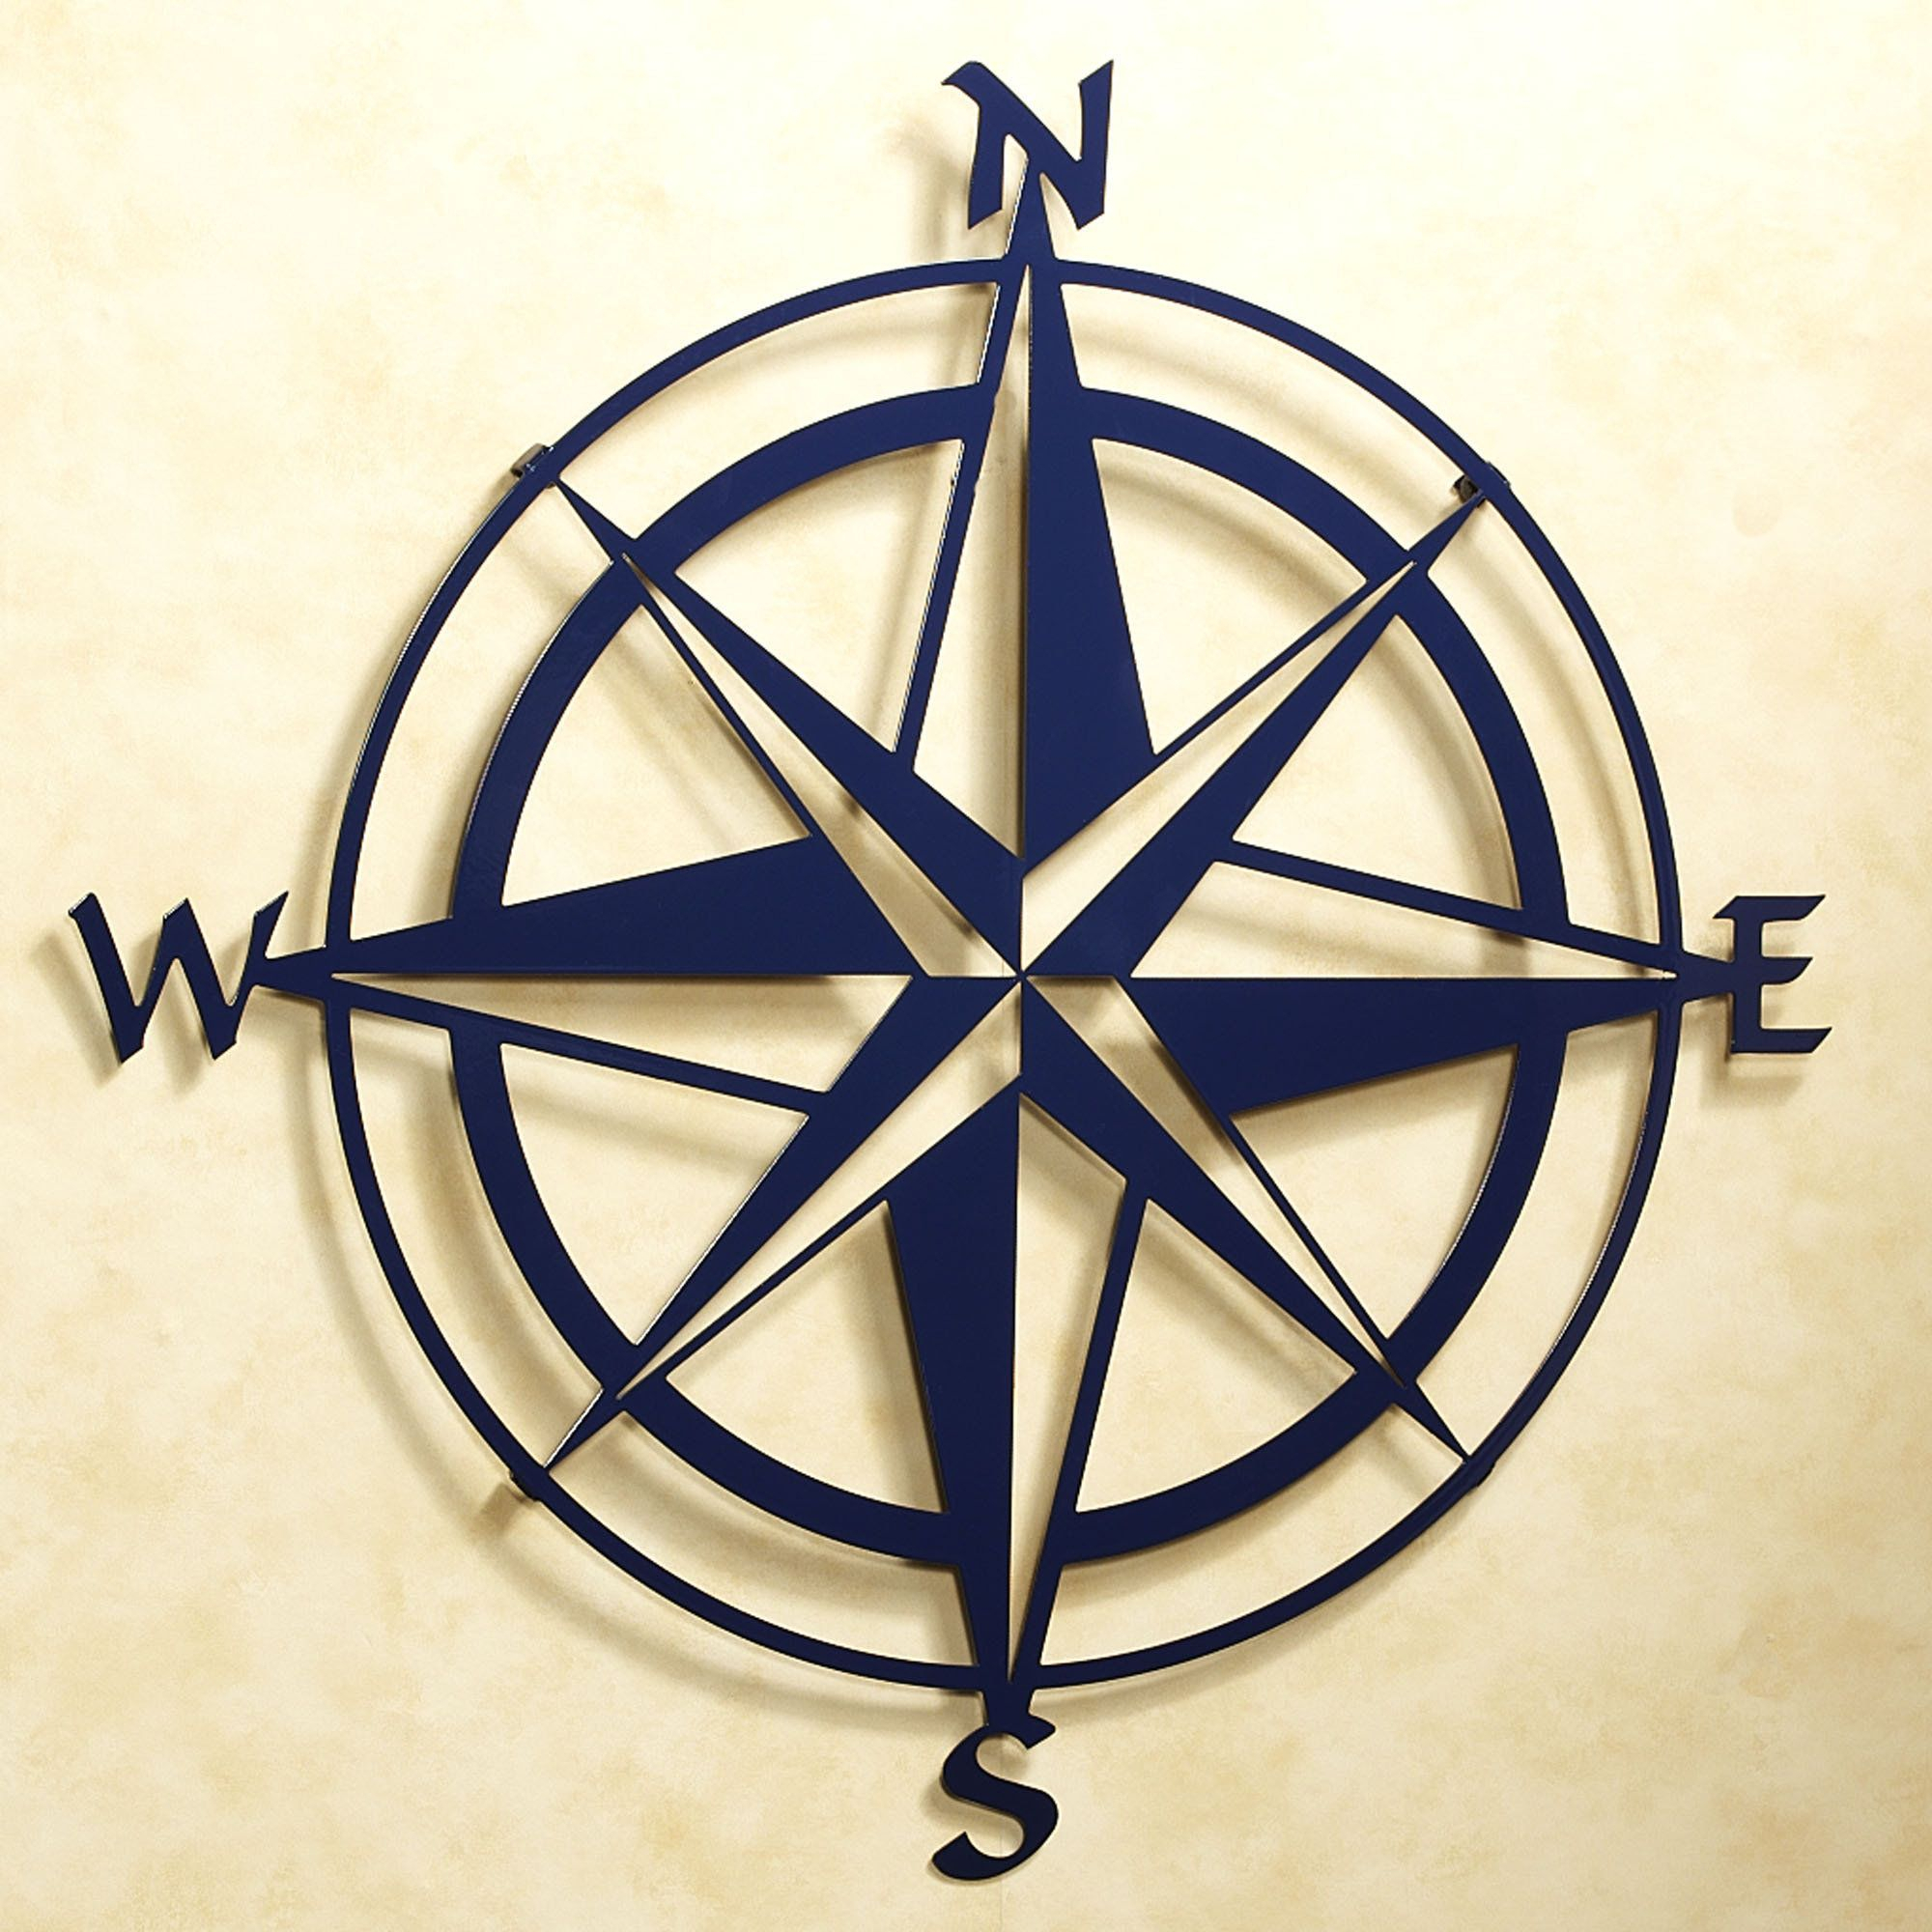 Compass Rose Indoor Outdoor Metal Wall Art | Compass Roses inside Round Compass Wall Decor (Image 6 of 30)